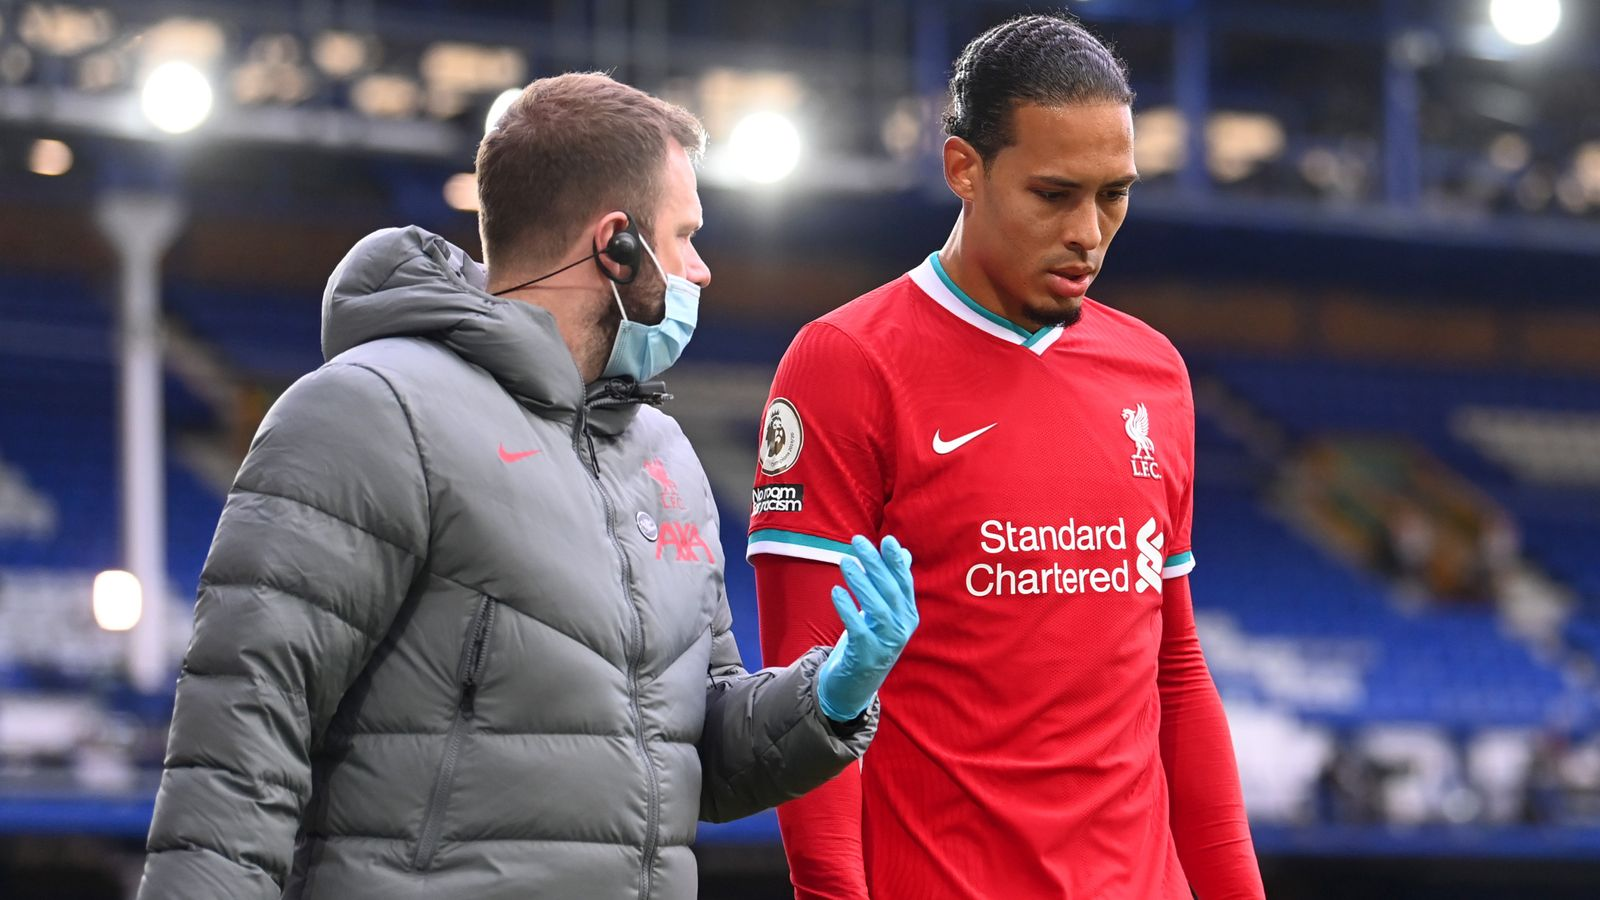 Virgil van Dijk: Liverpool defender undergoes 'successful' knee surgery in London